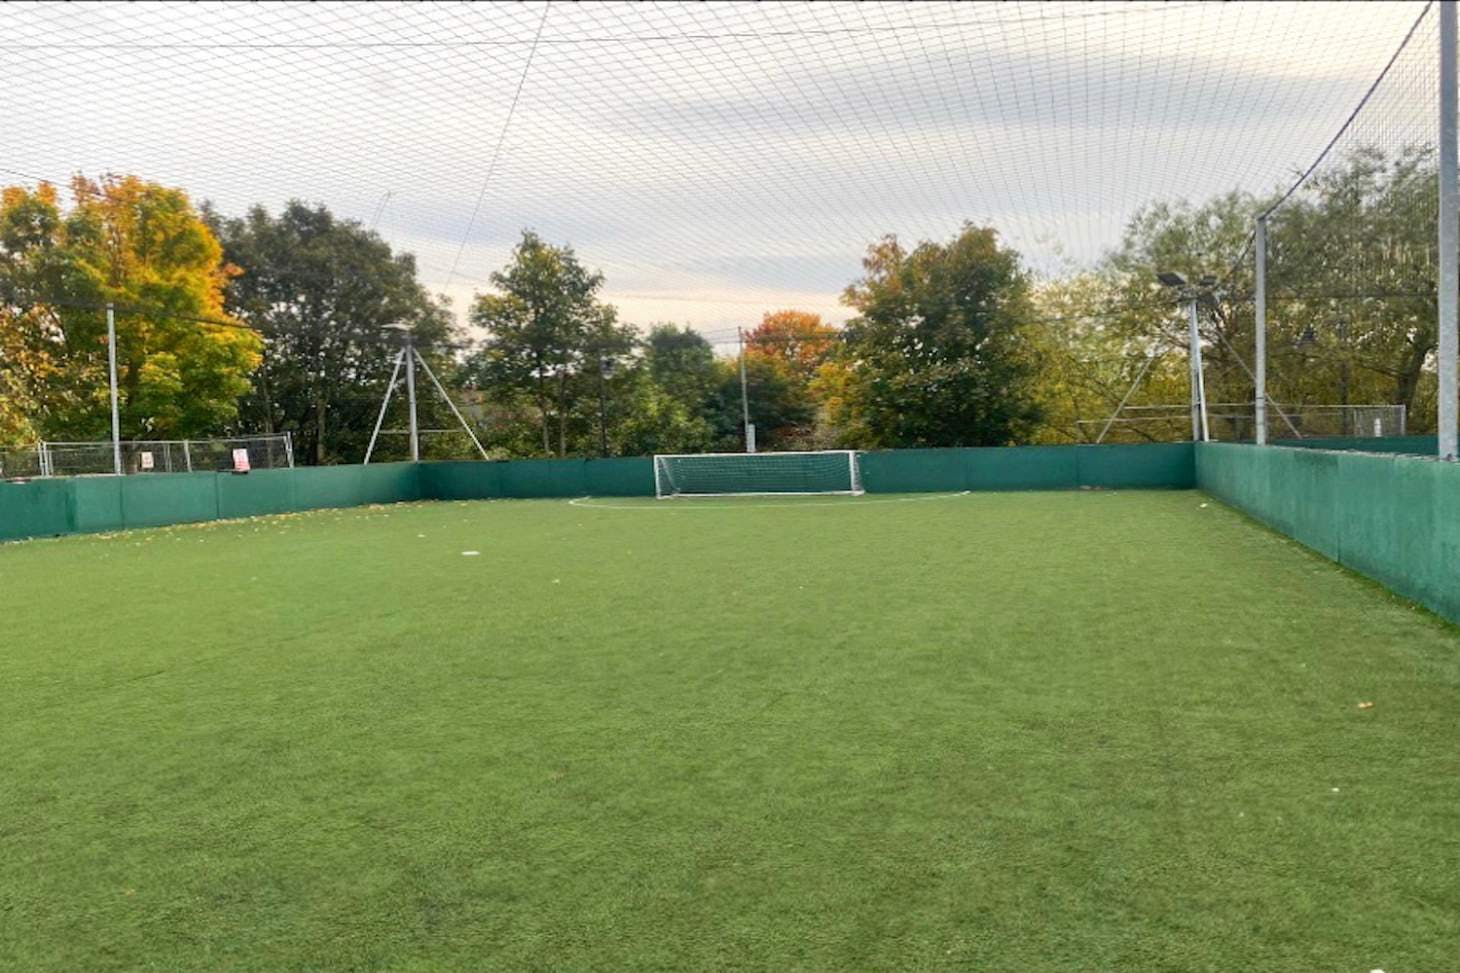 Powerleague Leeds Central 5 a side | 3G Astroturf football pitch